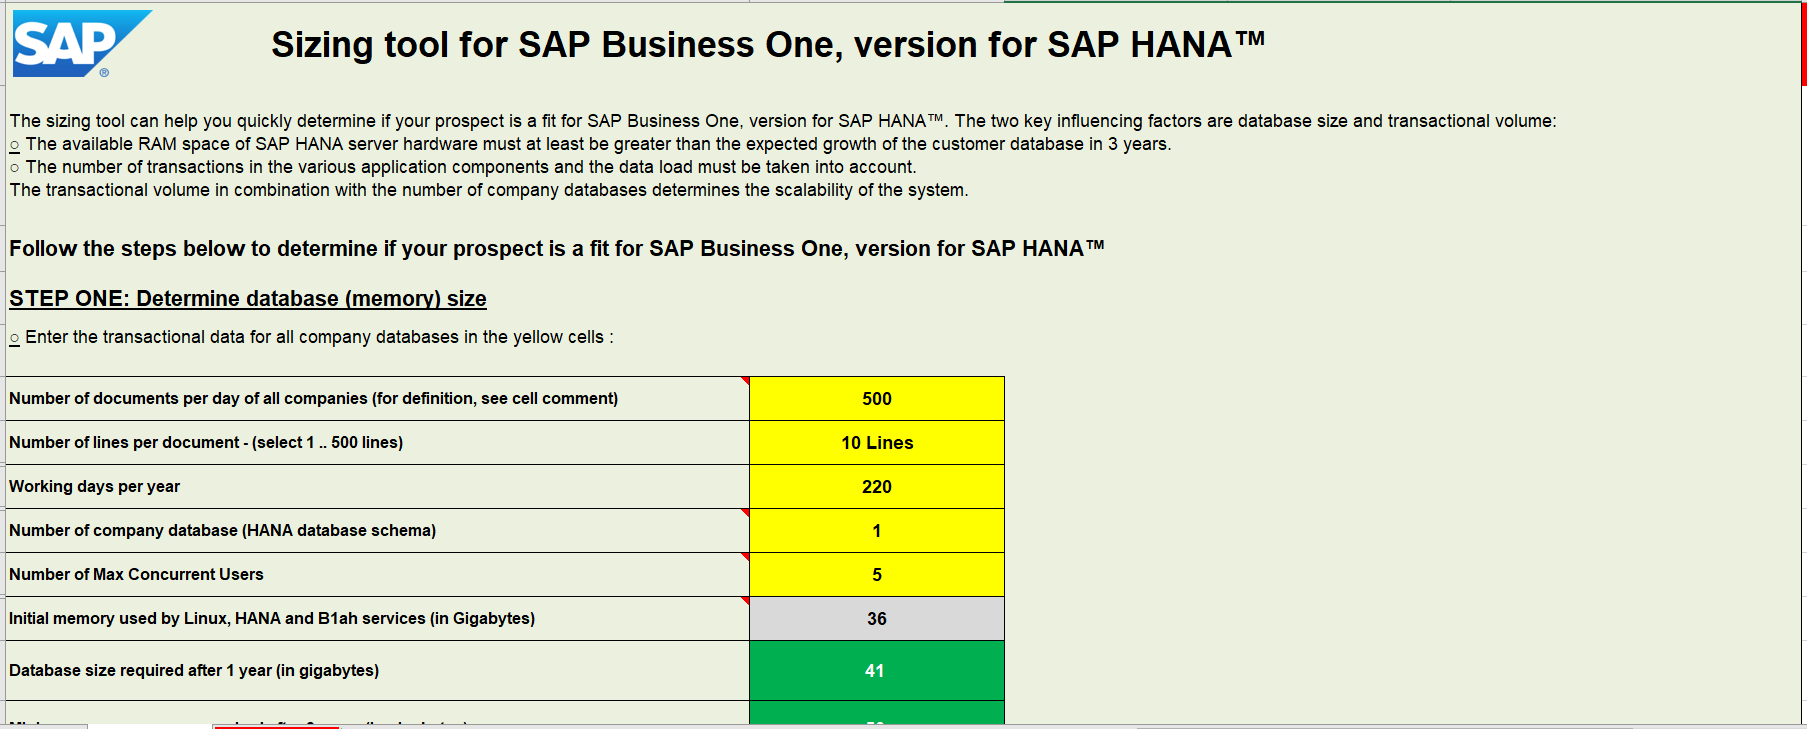 Sizing Tool for SAP Business One - Checking Eligibility to Use